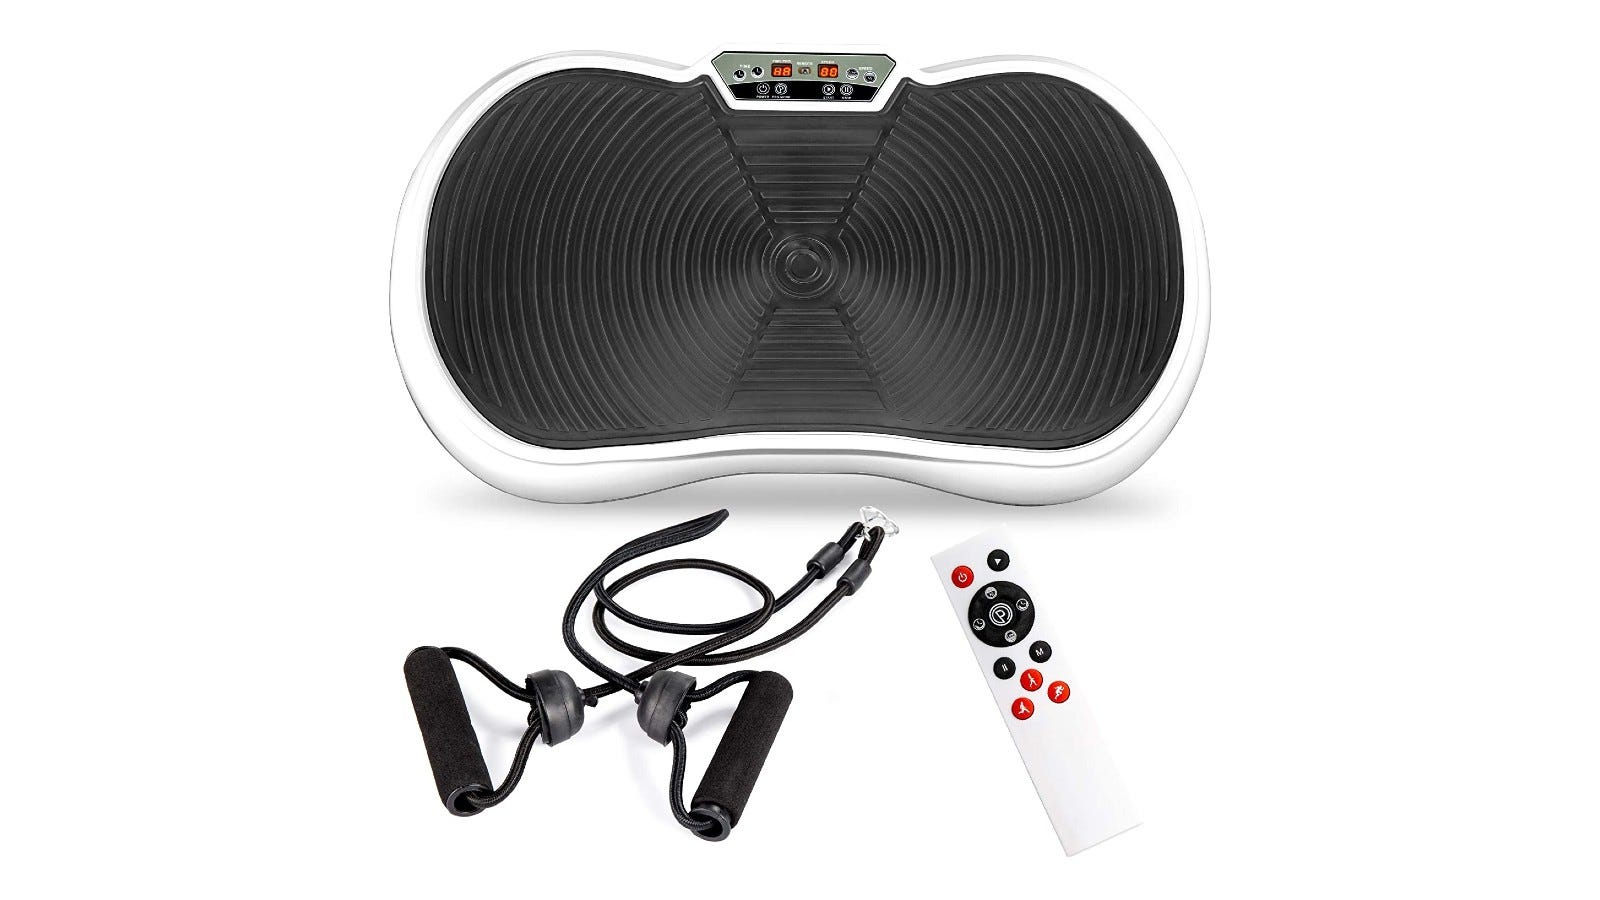 a black and white vibration plate with a remote control and resistance bands